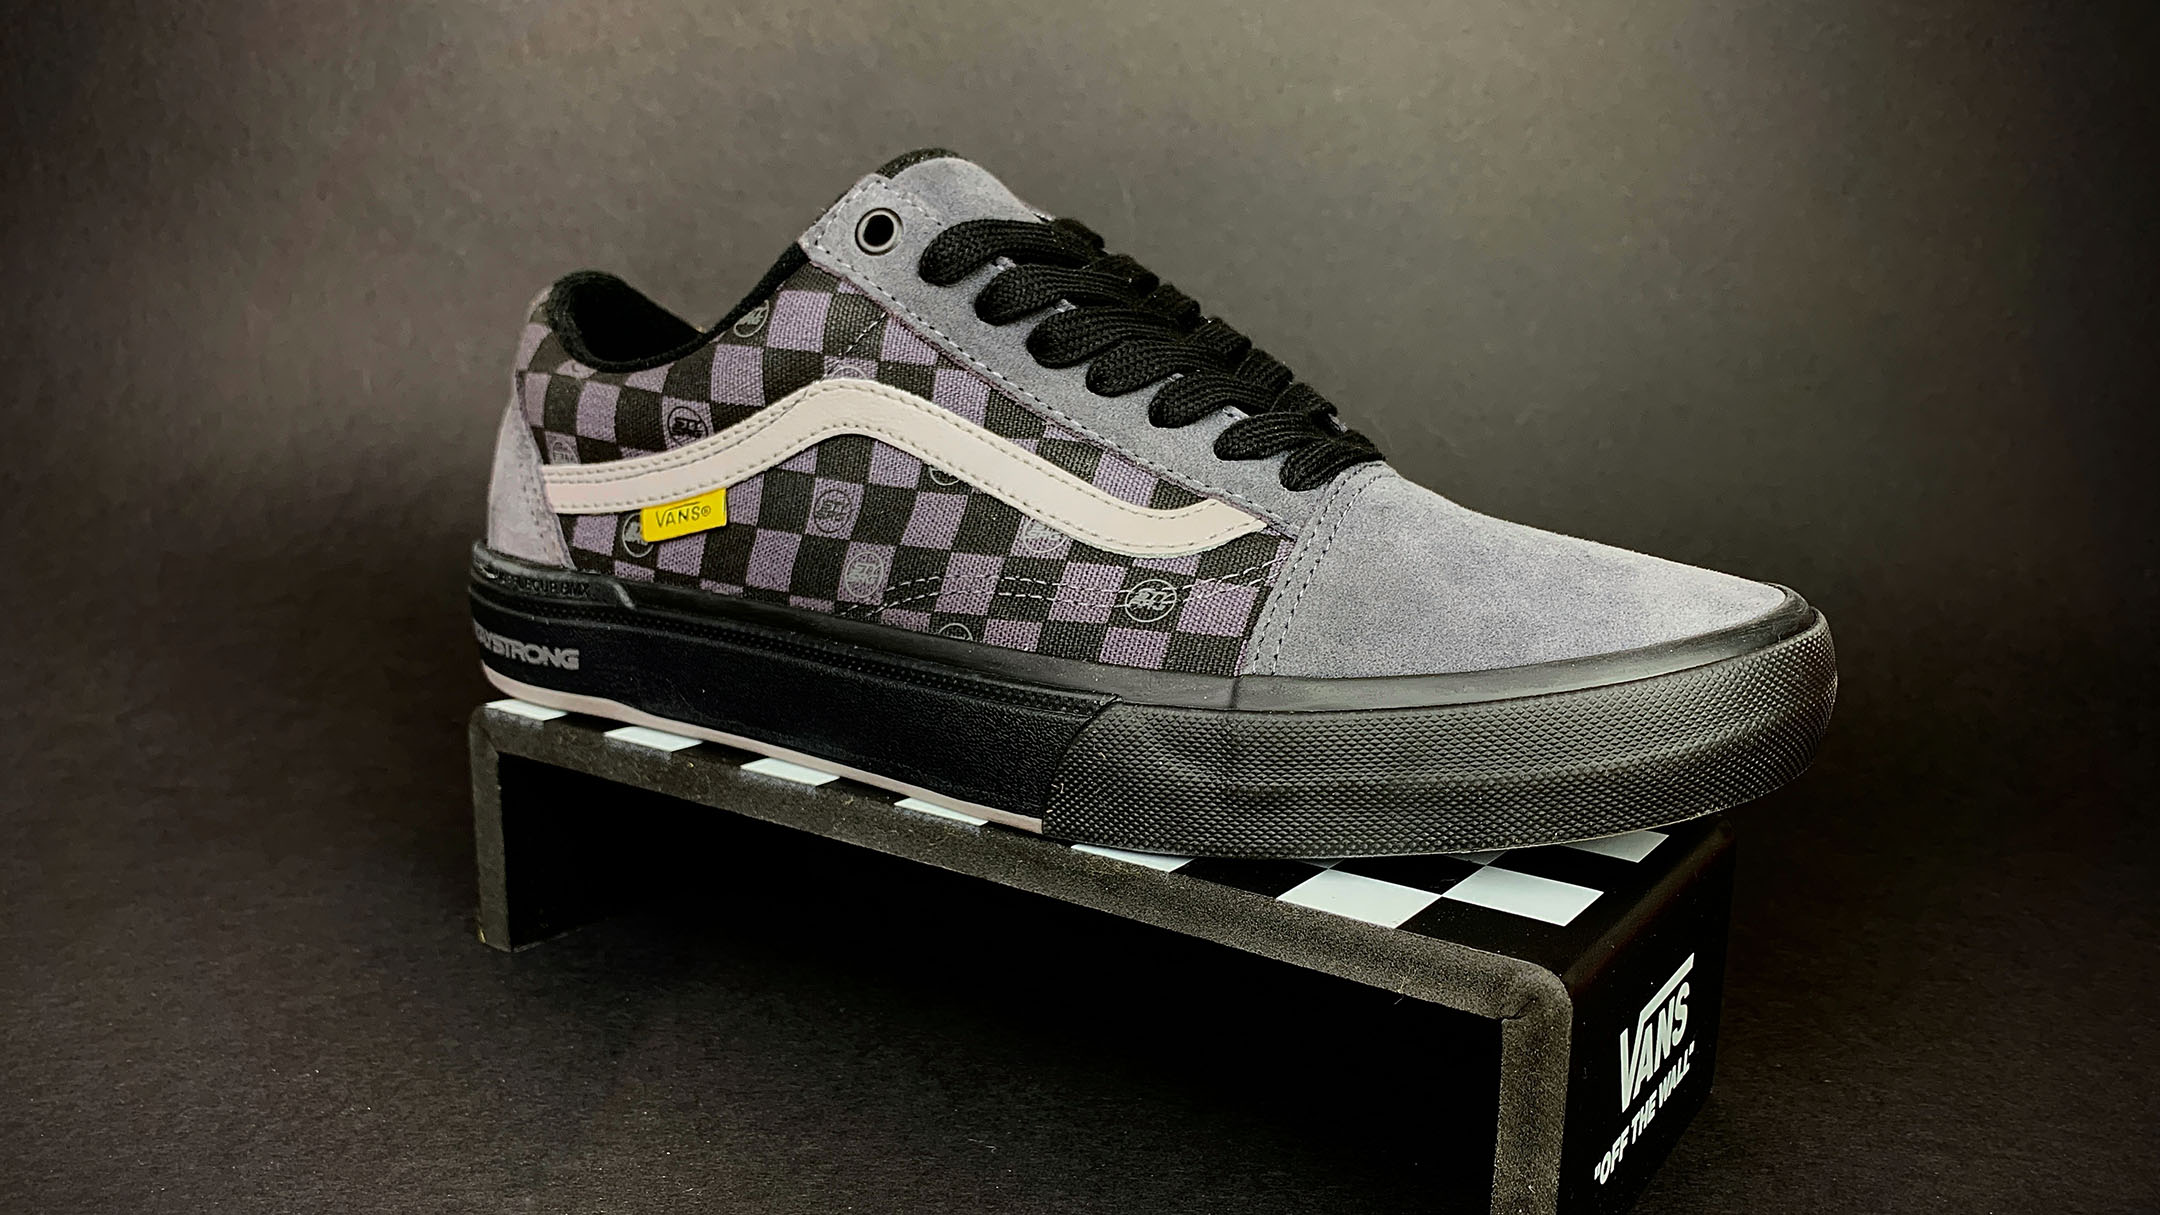 STAY STRONG x VANS: V3 Limited Edition Shoes